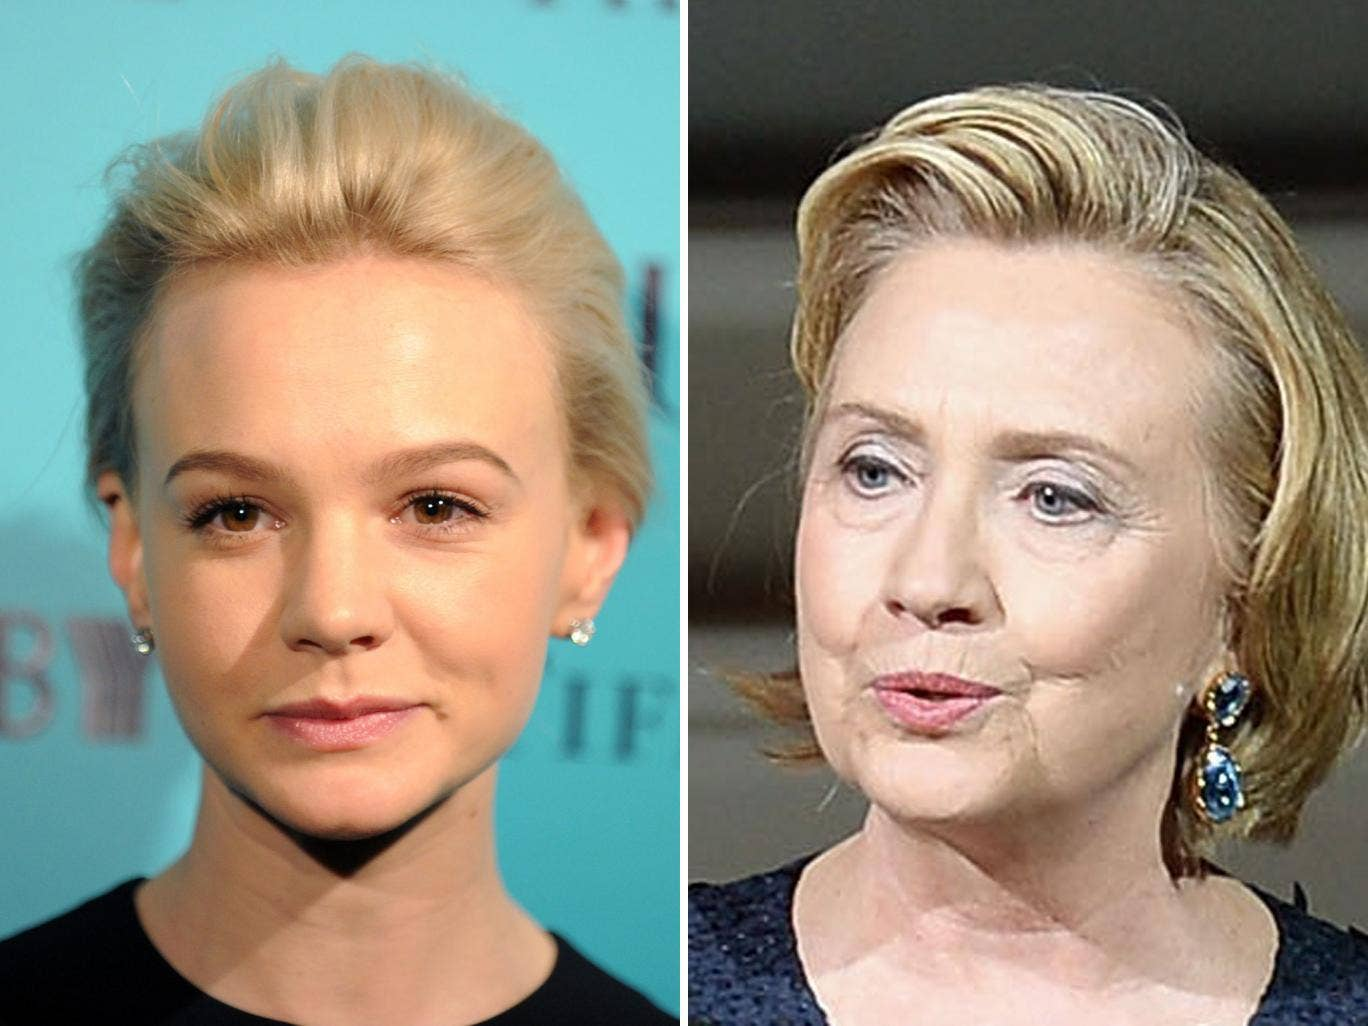 Carey Mulligan is set to beat a string of American rivals to play the role of Hillary Clinton in a biopic